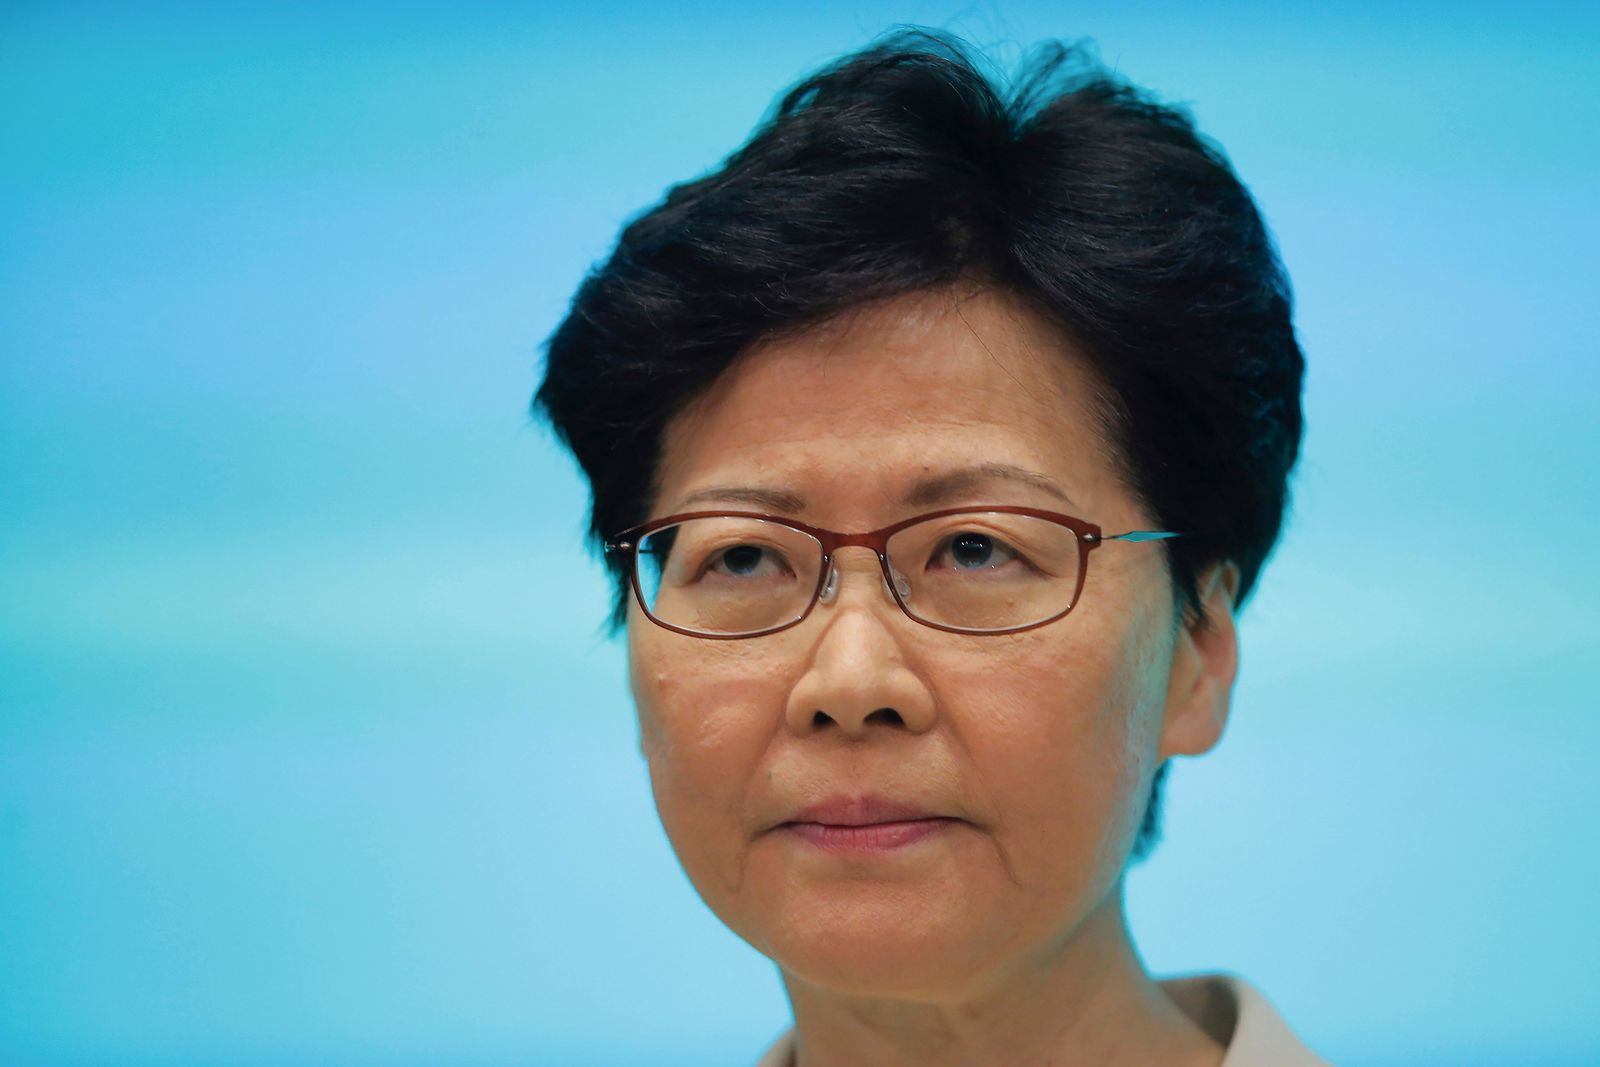 Hong Kong Chief Executive Carrie Lam pauses during a press conference at the Legislative Council in Hong Kong, Tuesday, June 18, 2019. Hong Kong leader apologizes for her handling of unpopular extradition bill, says the city needs hope. (AP Photo/Kin Cheung)